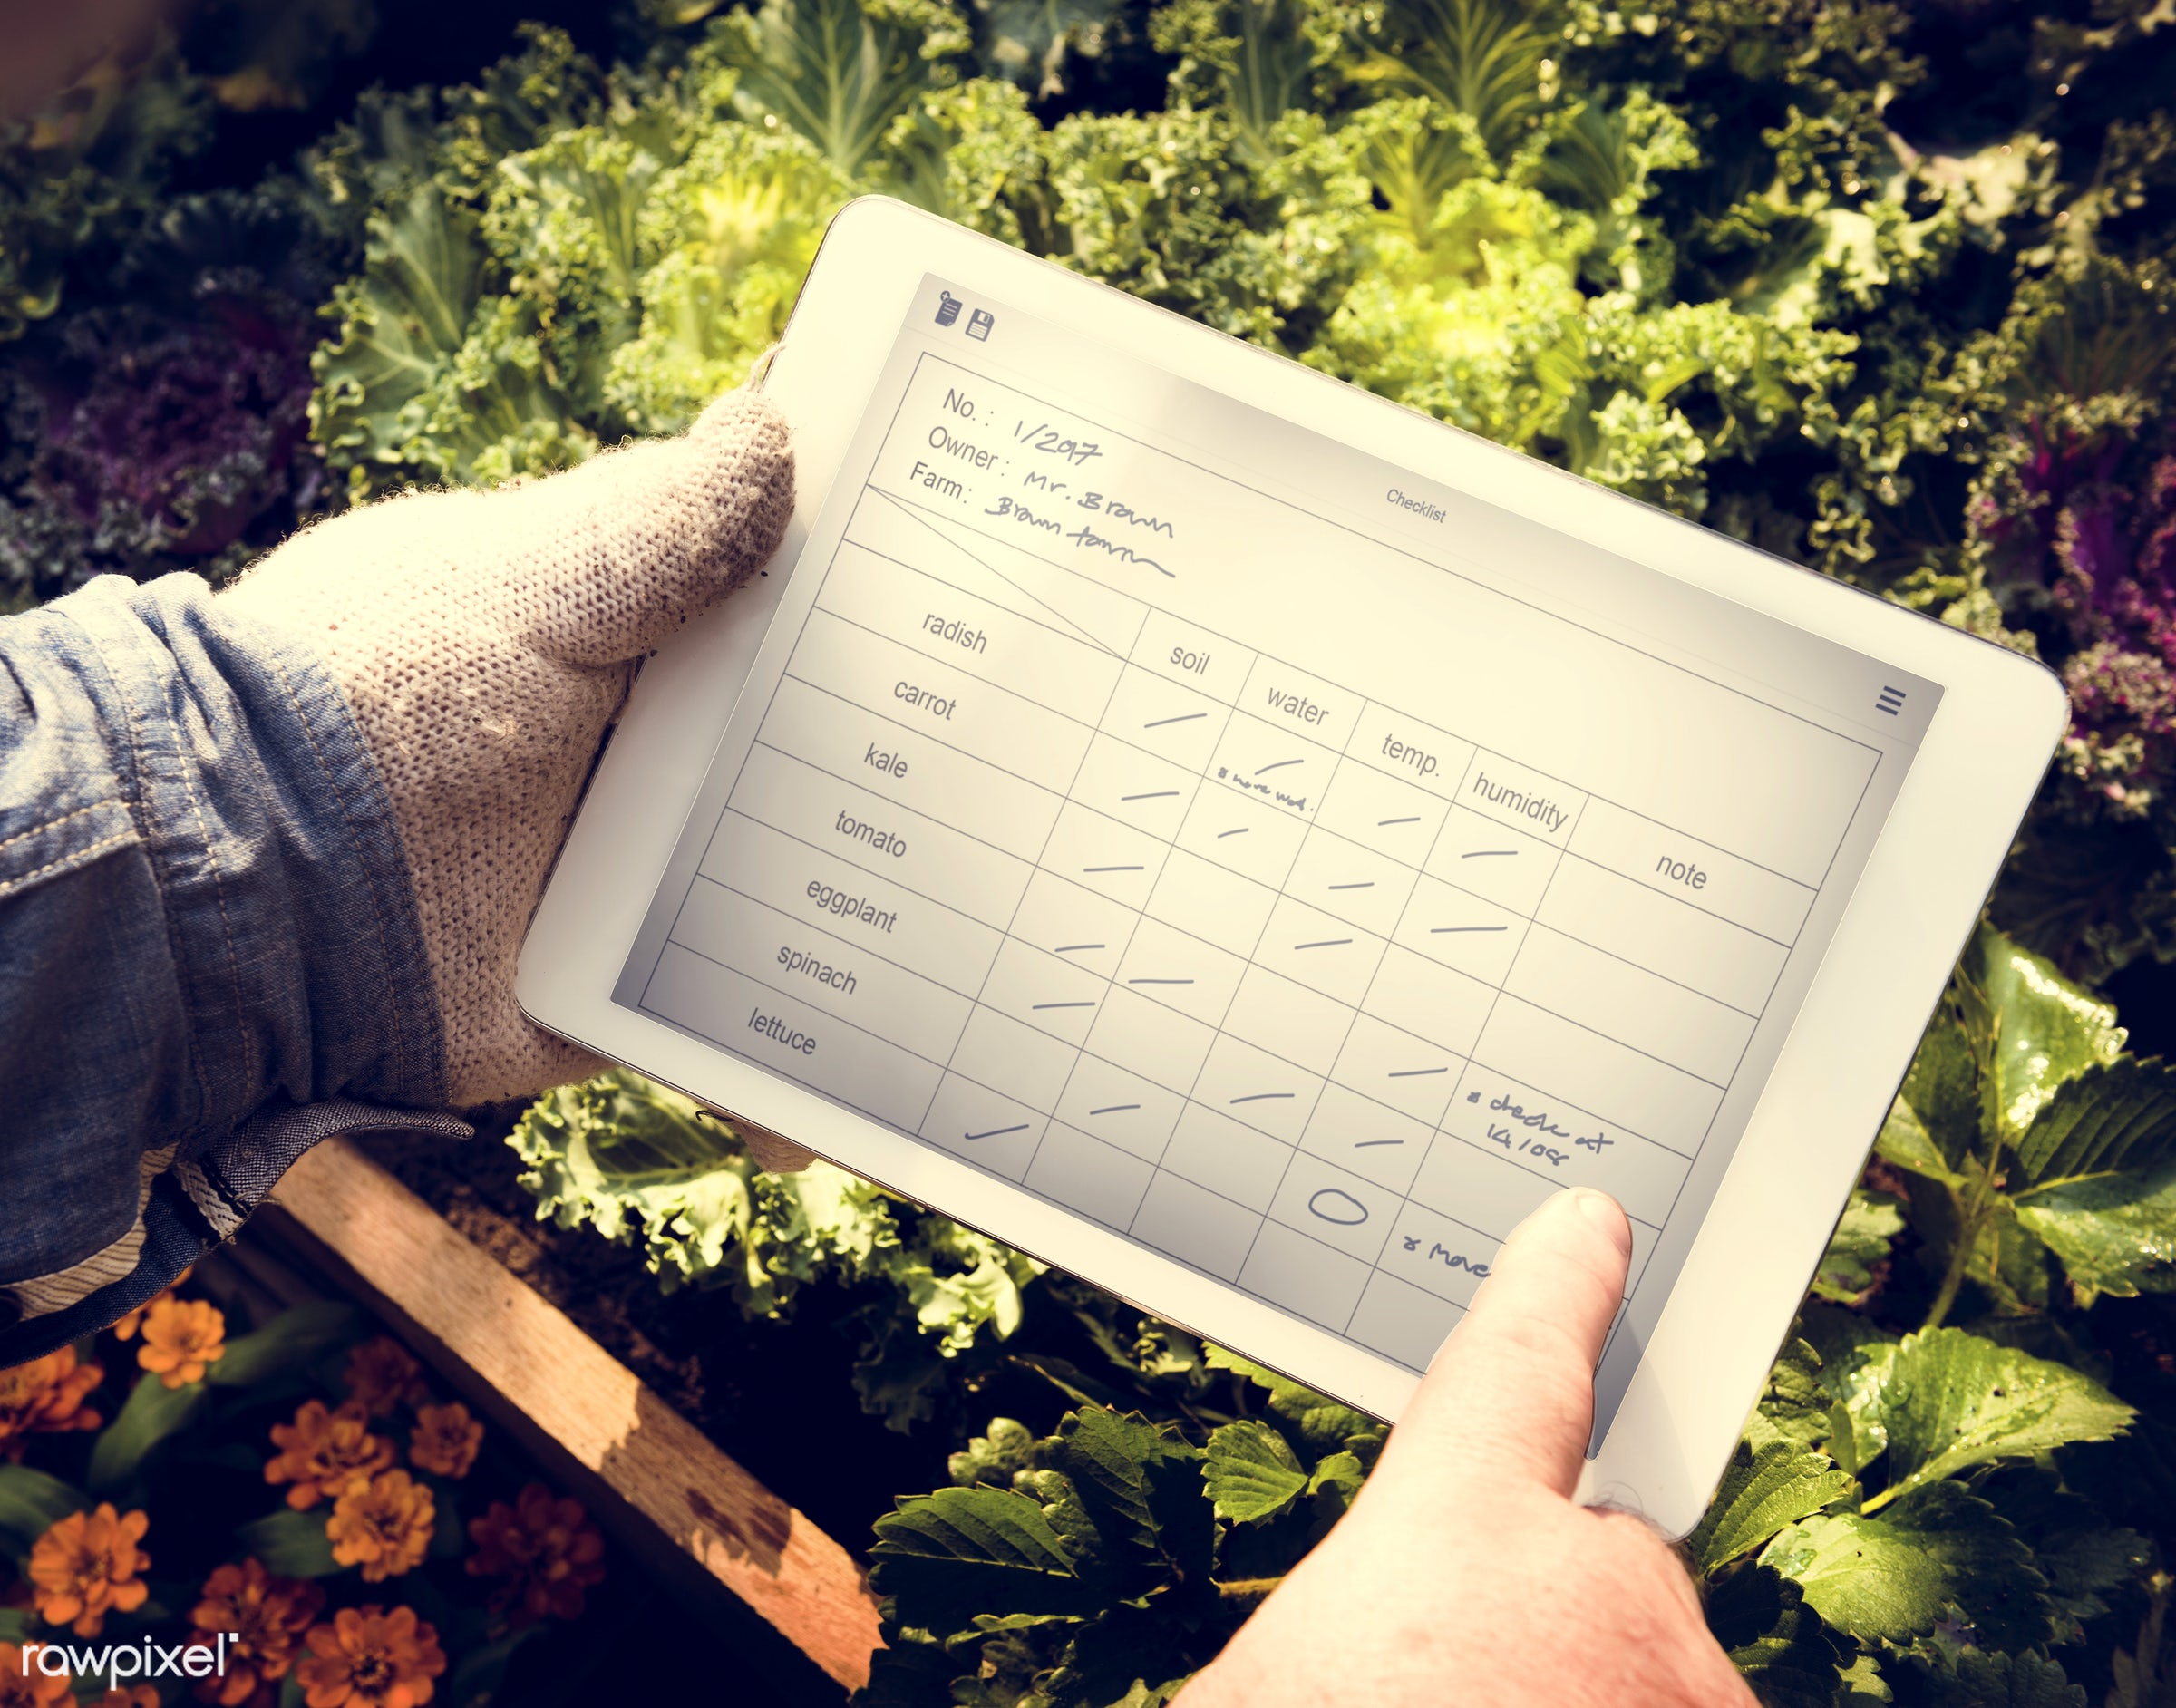 salad, person, technology, holding, leaves, people, farmer, dirt, flowers, control, agriculture, planting, present, system,...